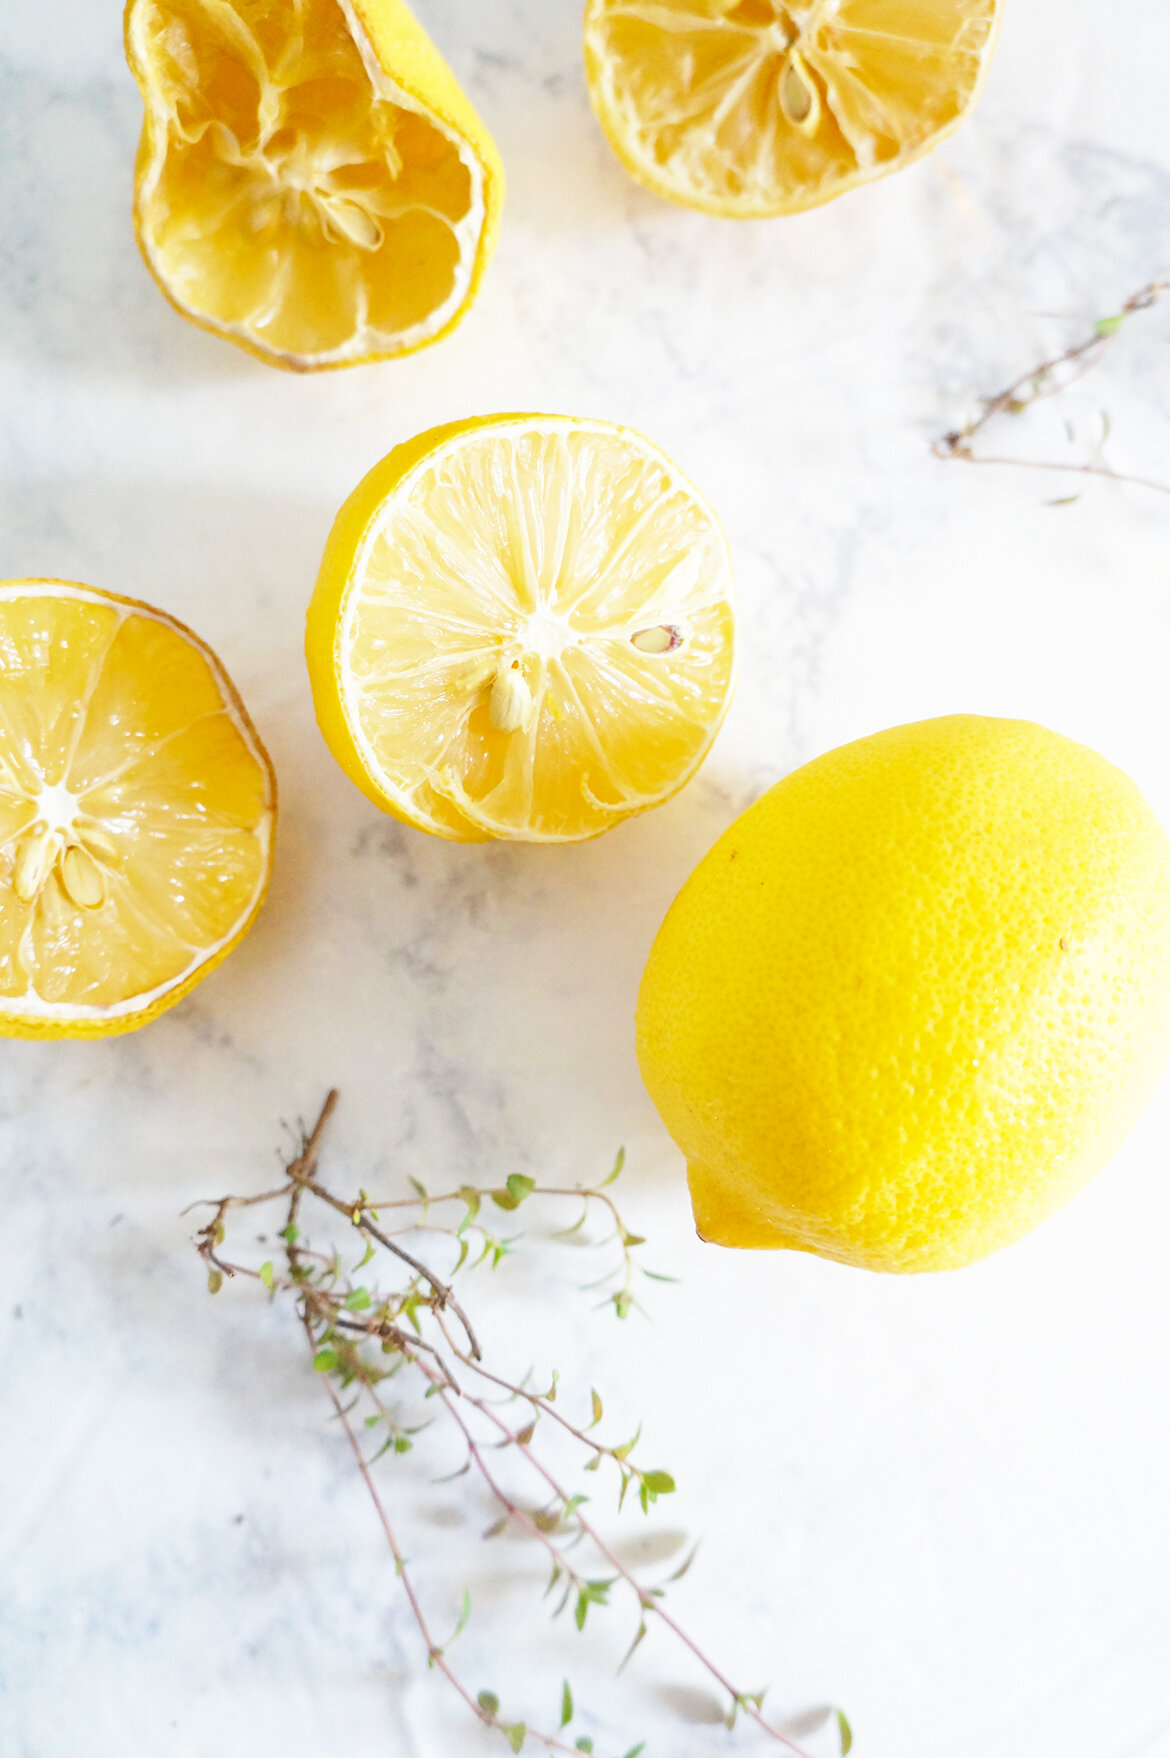 In Search of Our Garden Memphis Wellness Blogger shares a lemon and thyme household cleaner